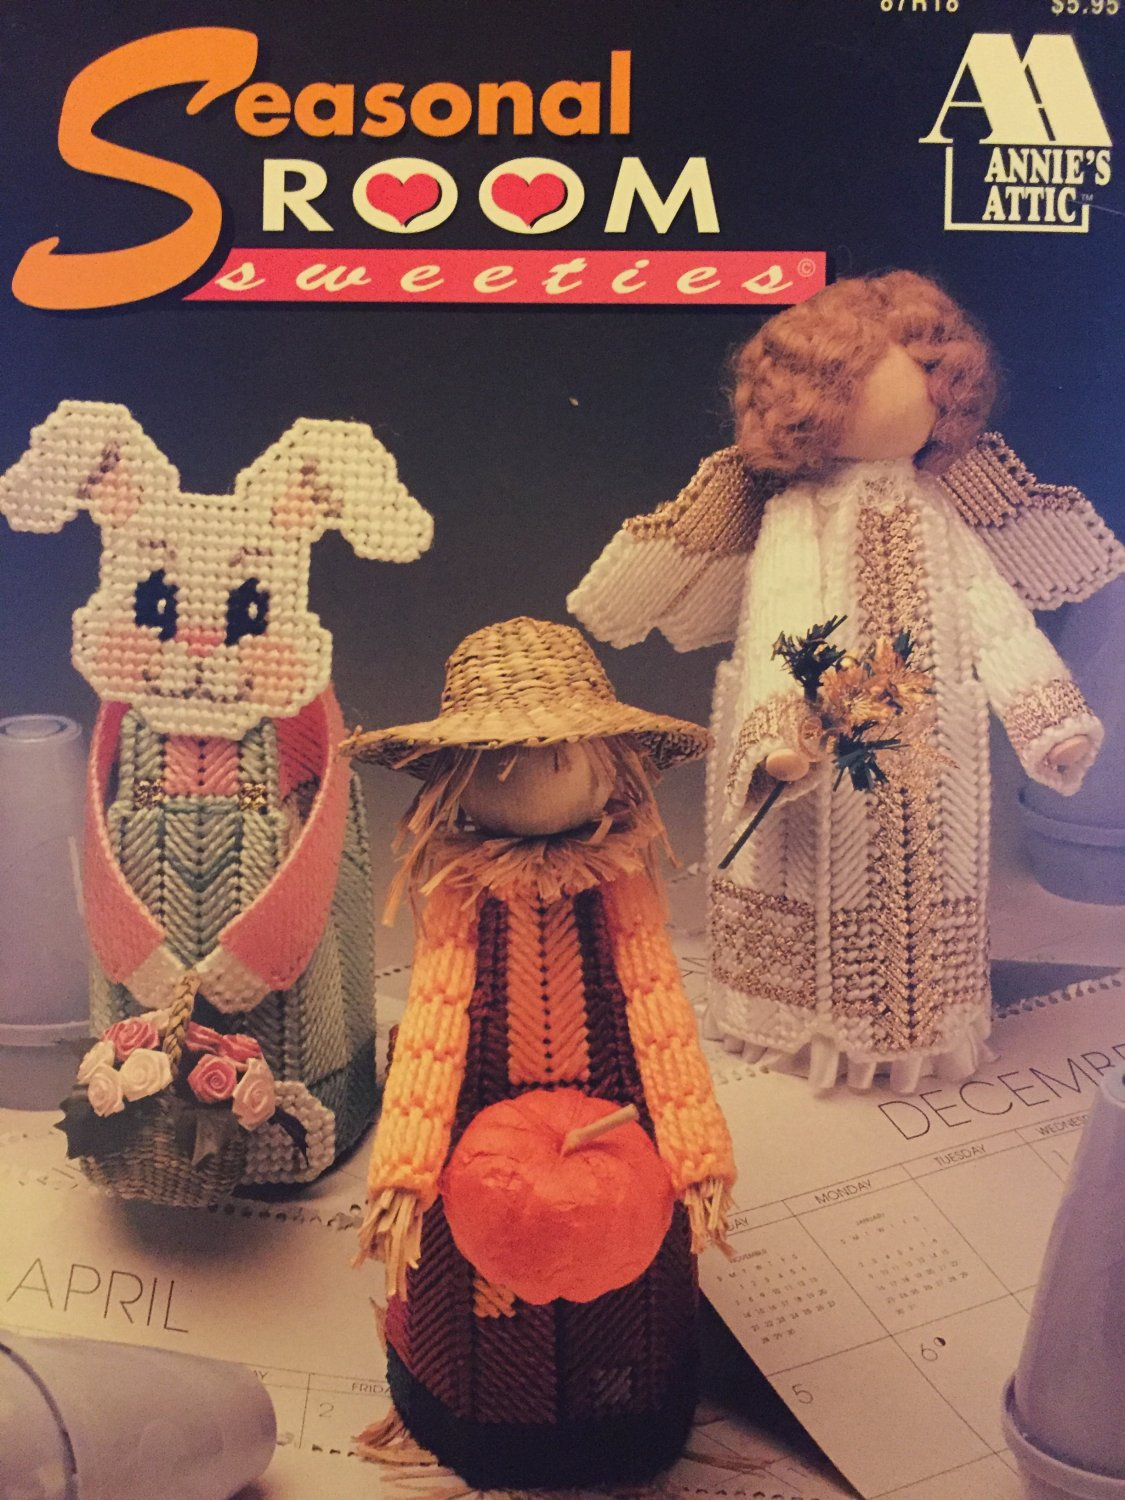 Seasonal Room Sweeties Air Fresheners Plastic Canvas Pattern Annies Attic 87R18